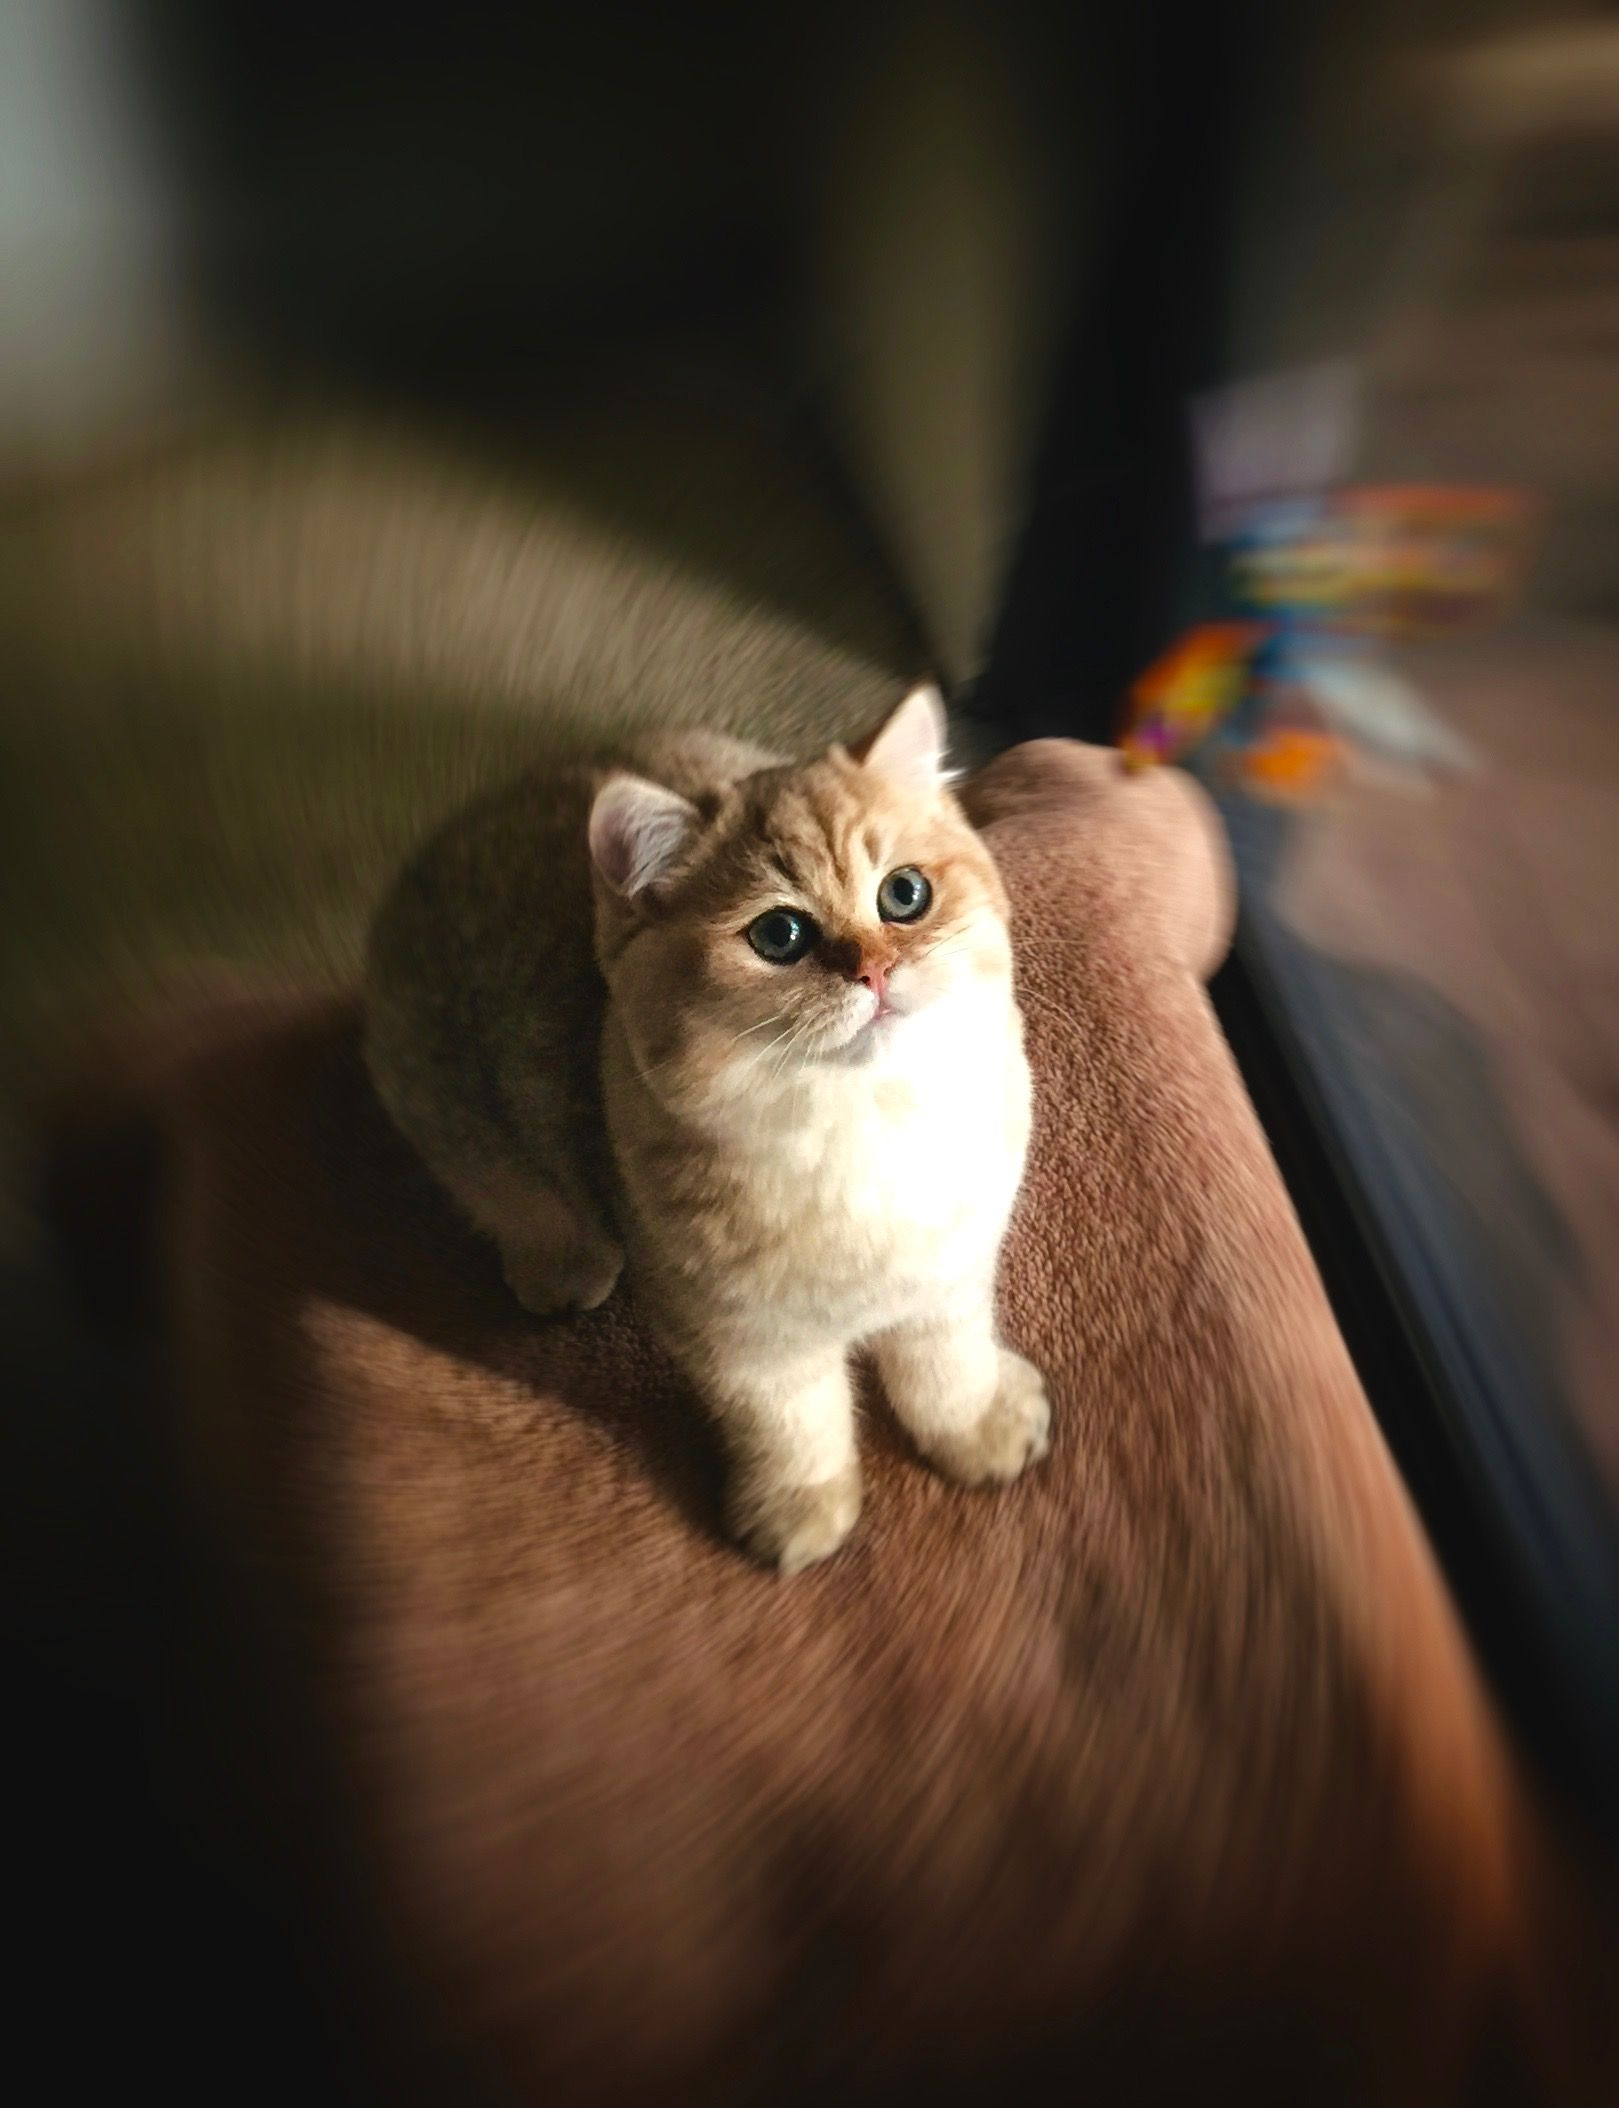 George Chumley Shaded Golden British Shorthair 5 Months Old British Shorthair British Shorthair Cats Cute Cats And Kittens